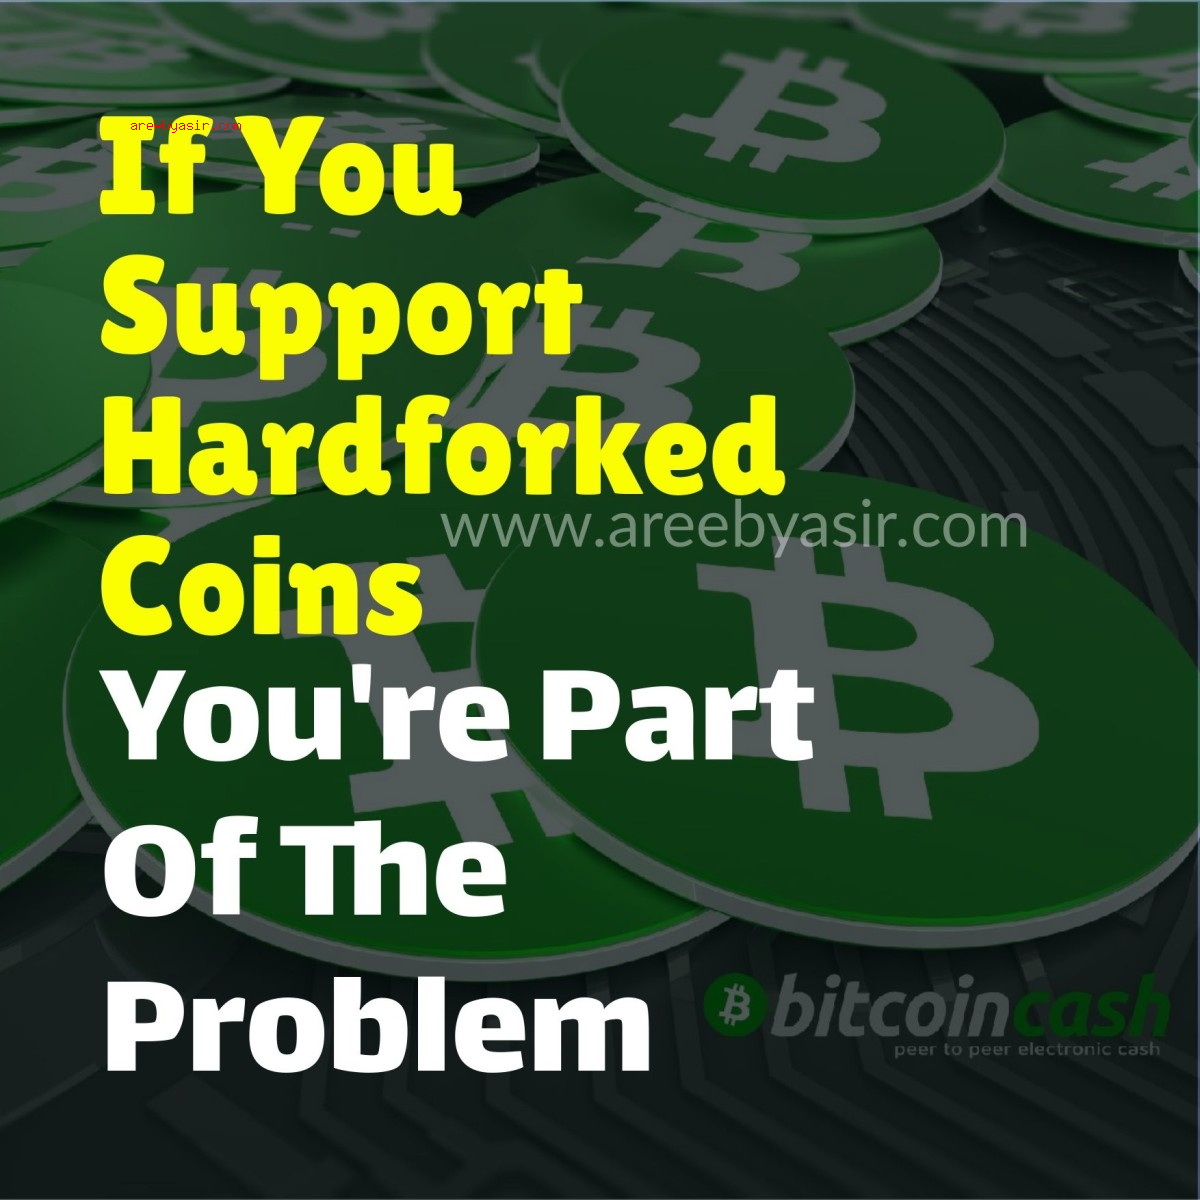 Why Hardforks In Cryptocurrency Are Bad